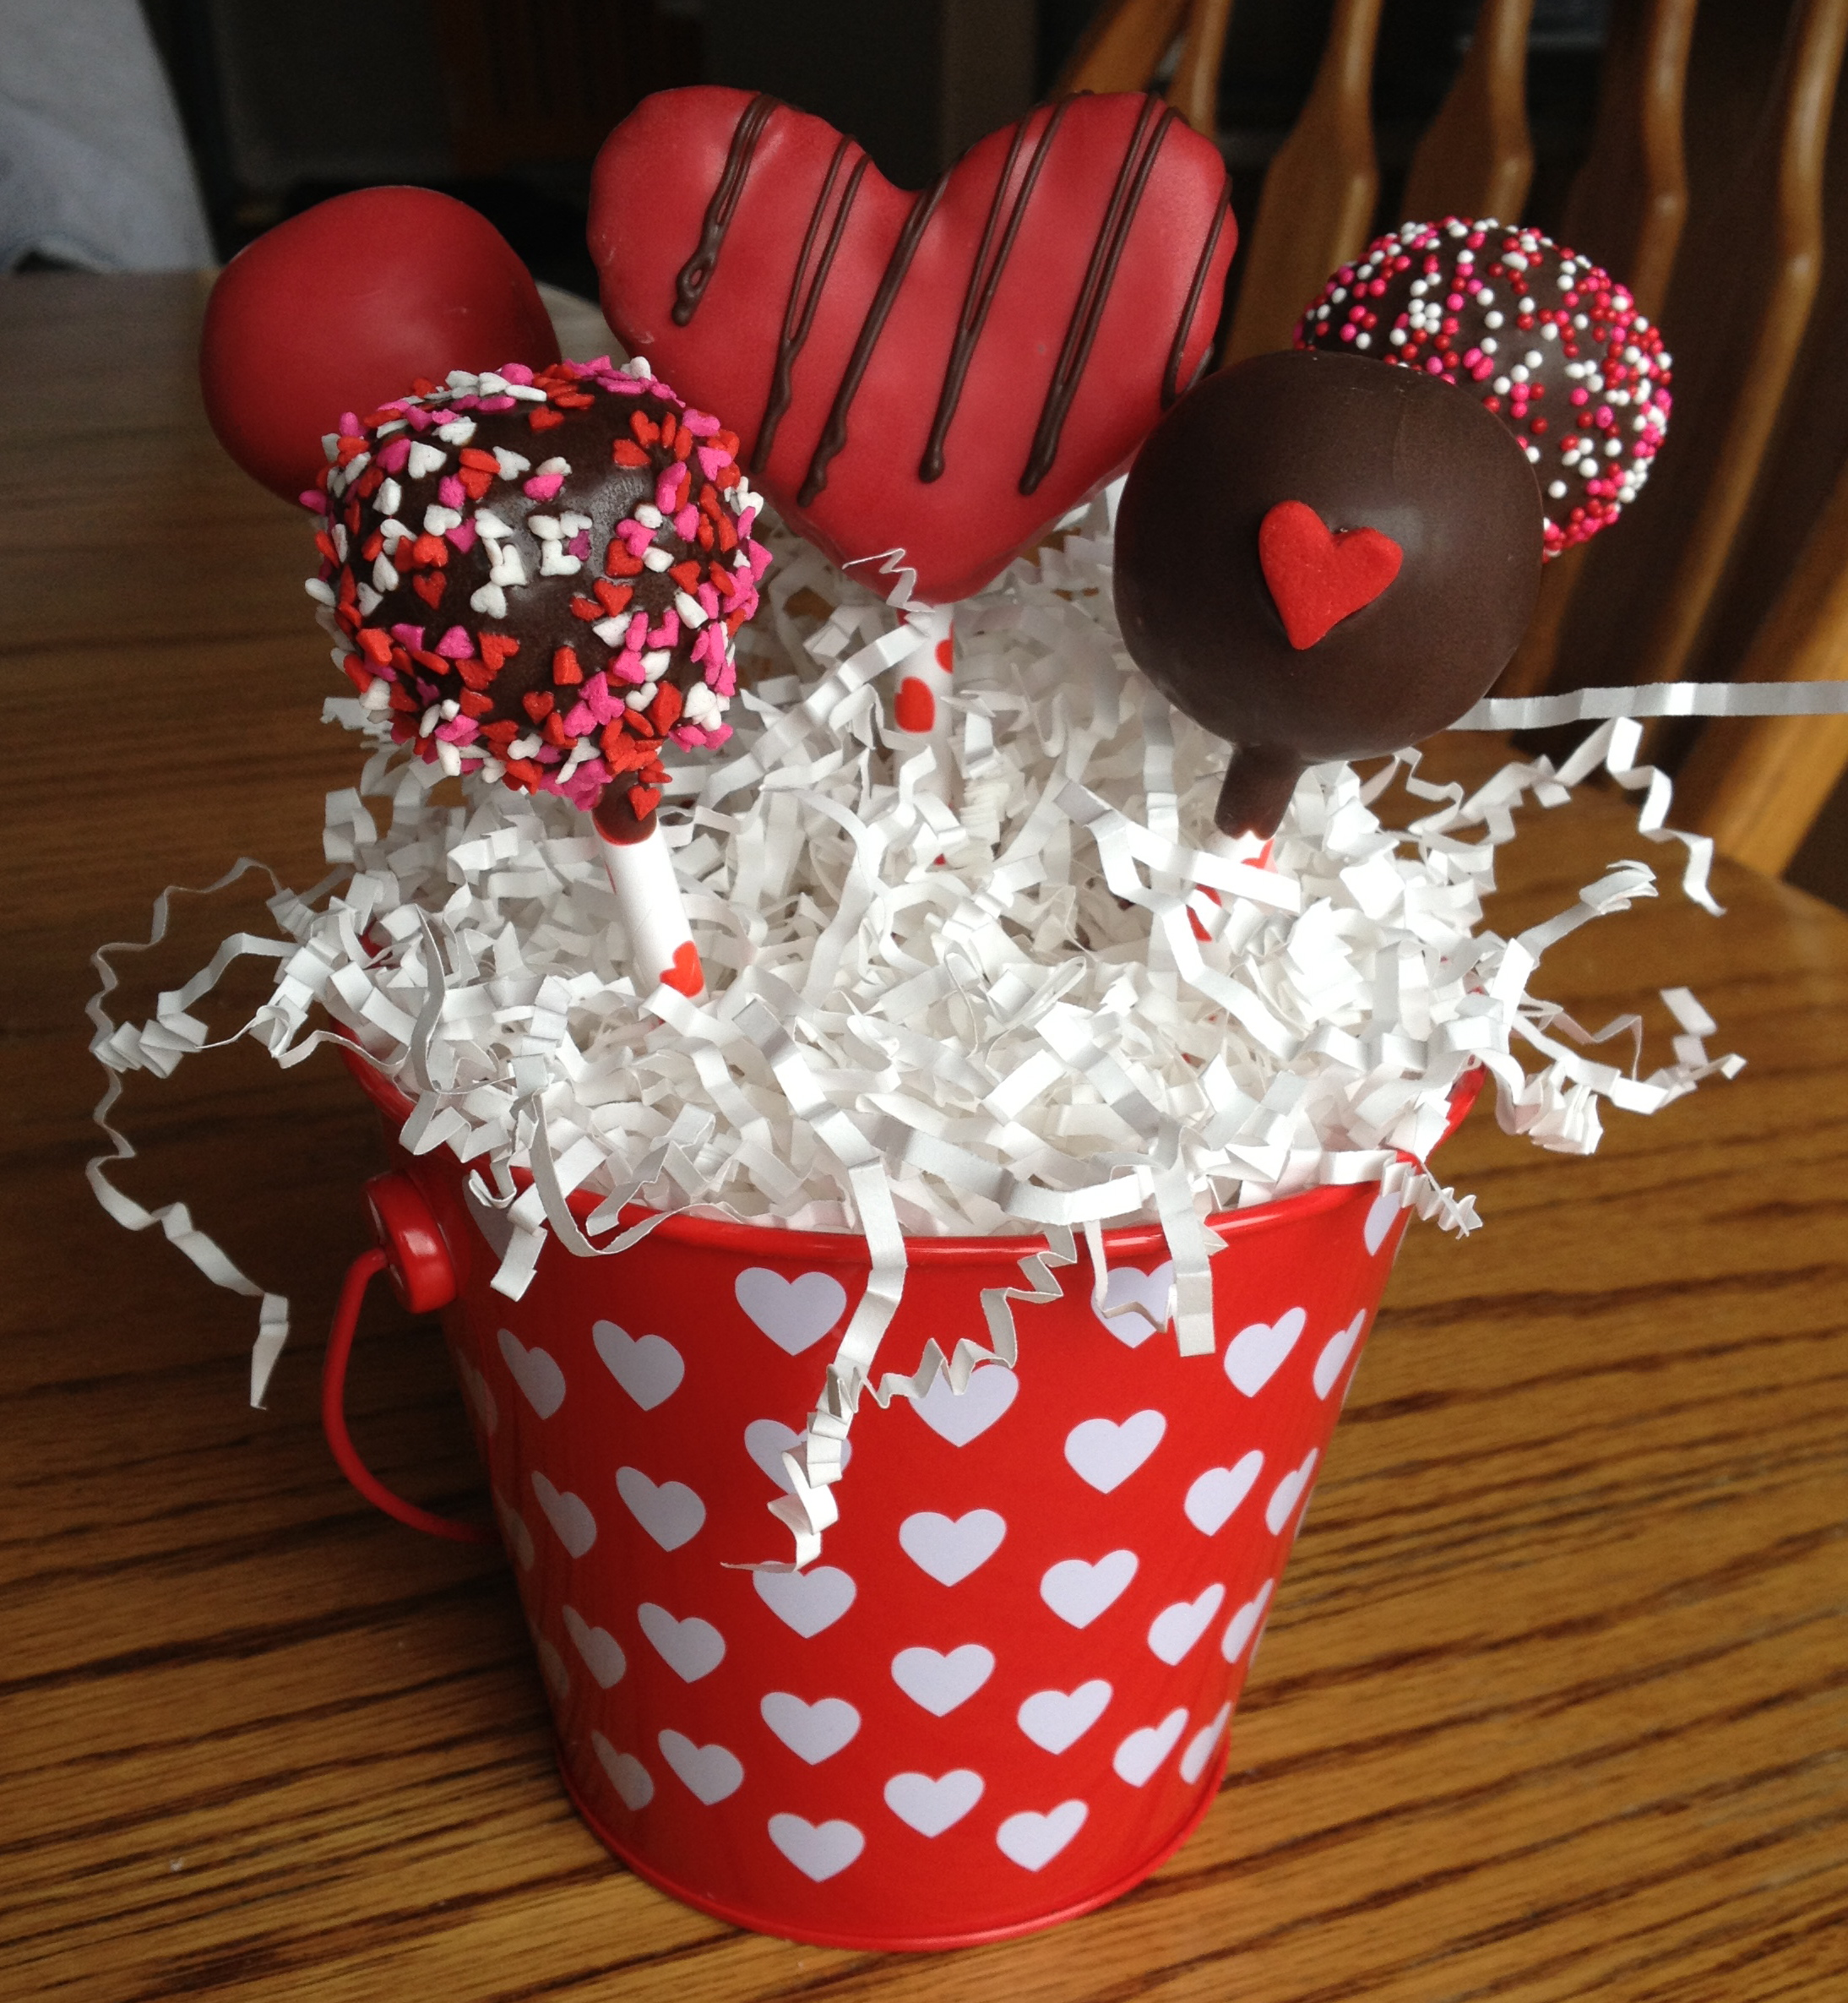 Cake Pop Designs Valentines Day : Valentine s Day Cake Pops courtney s craftin&cookin